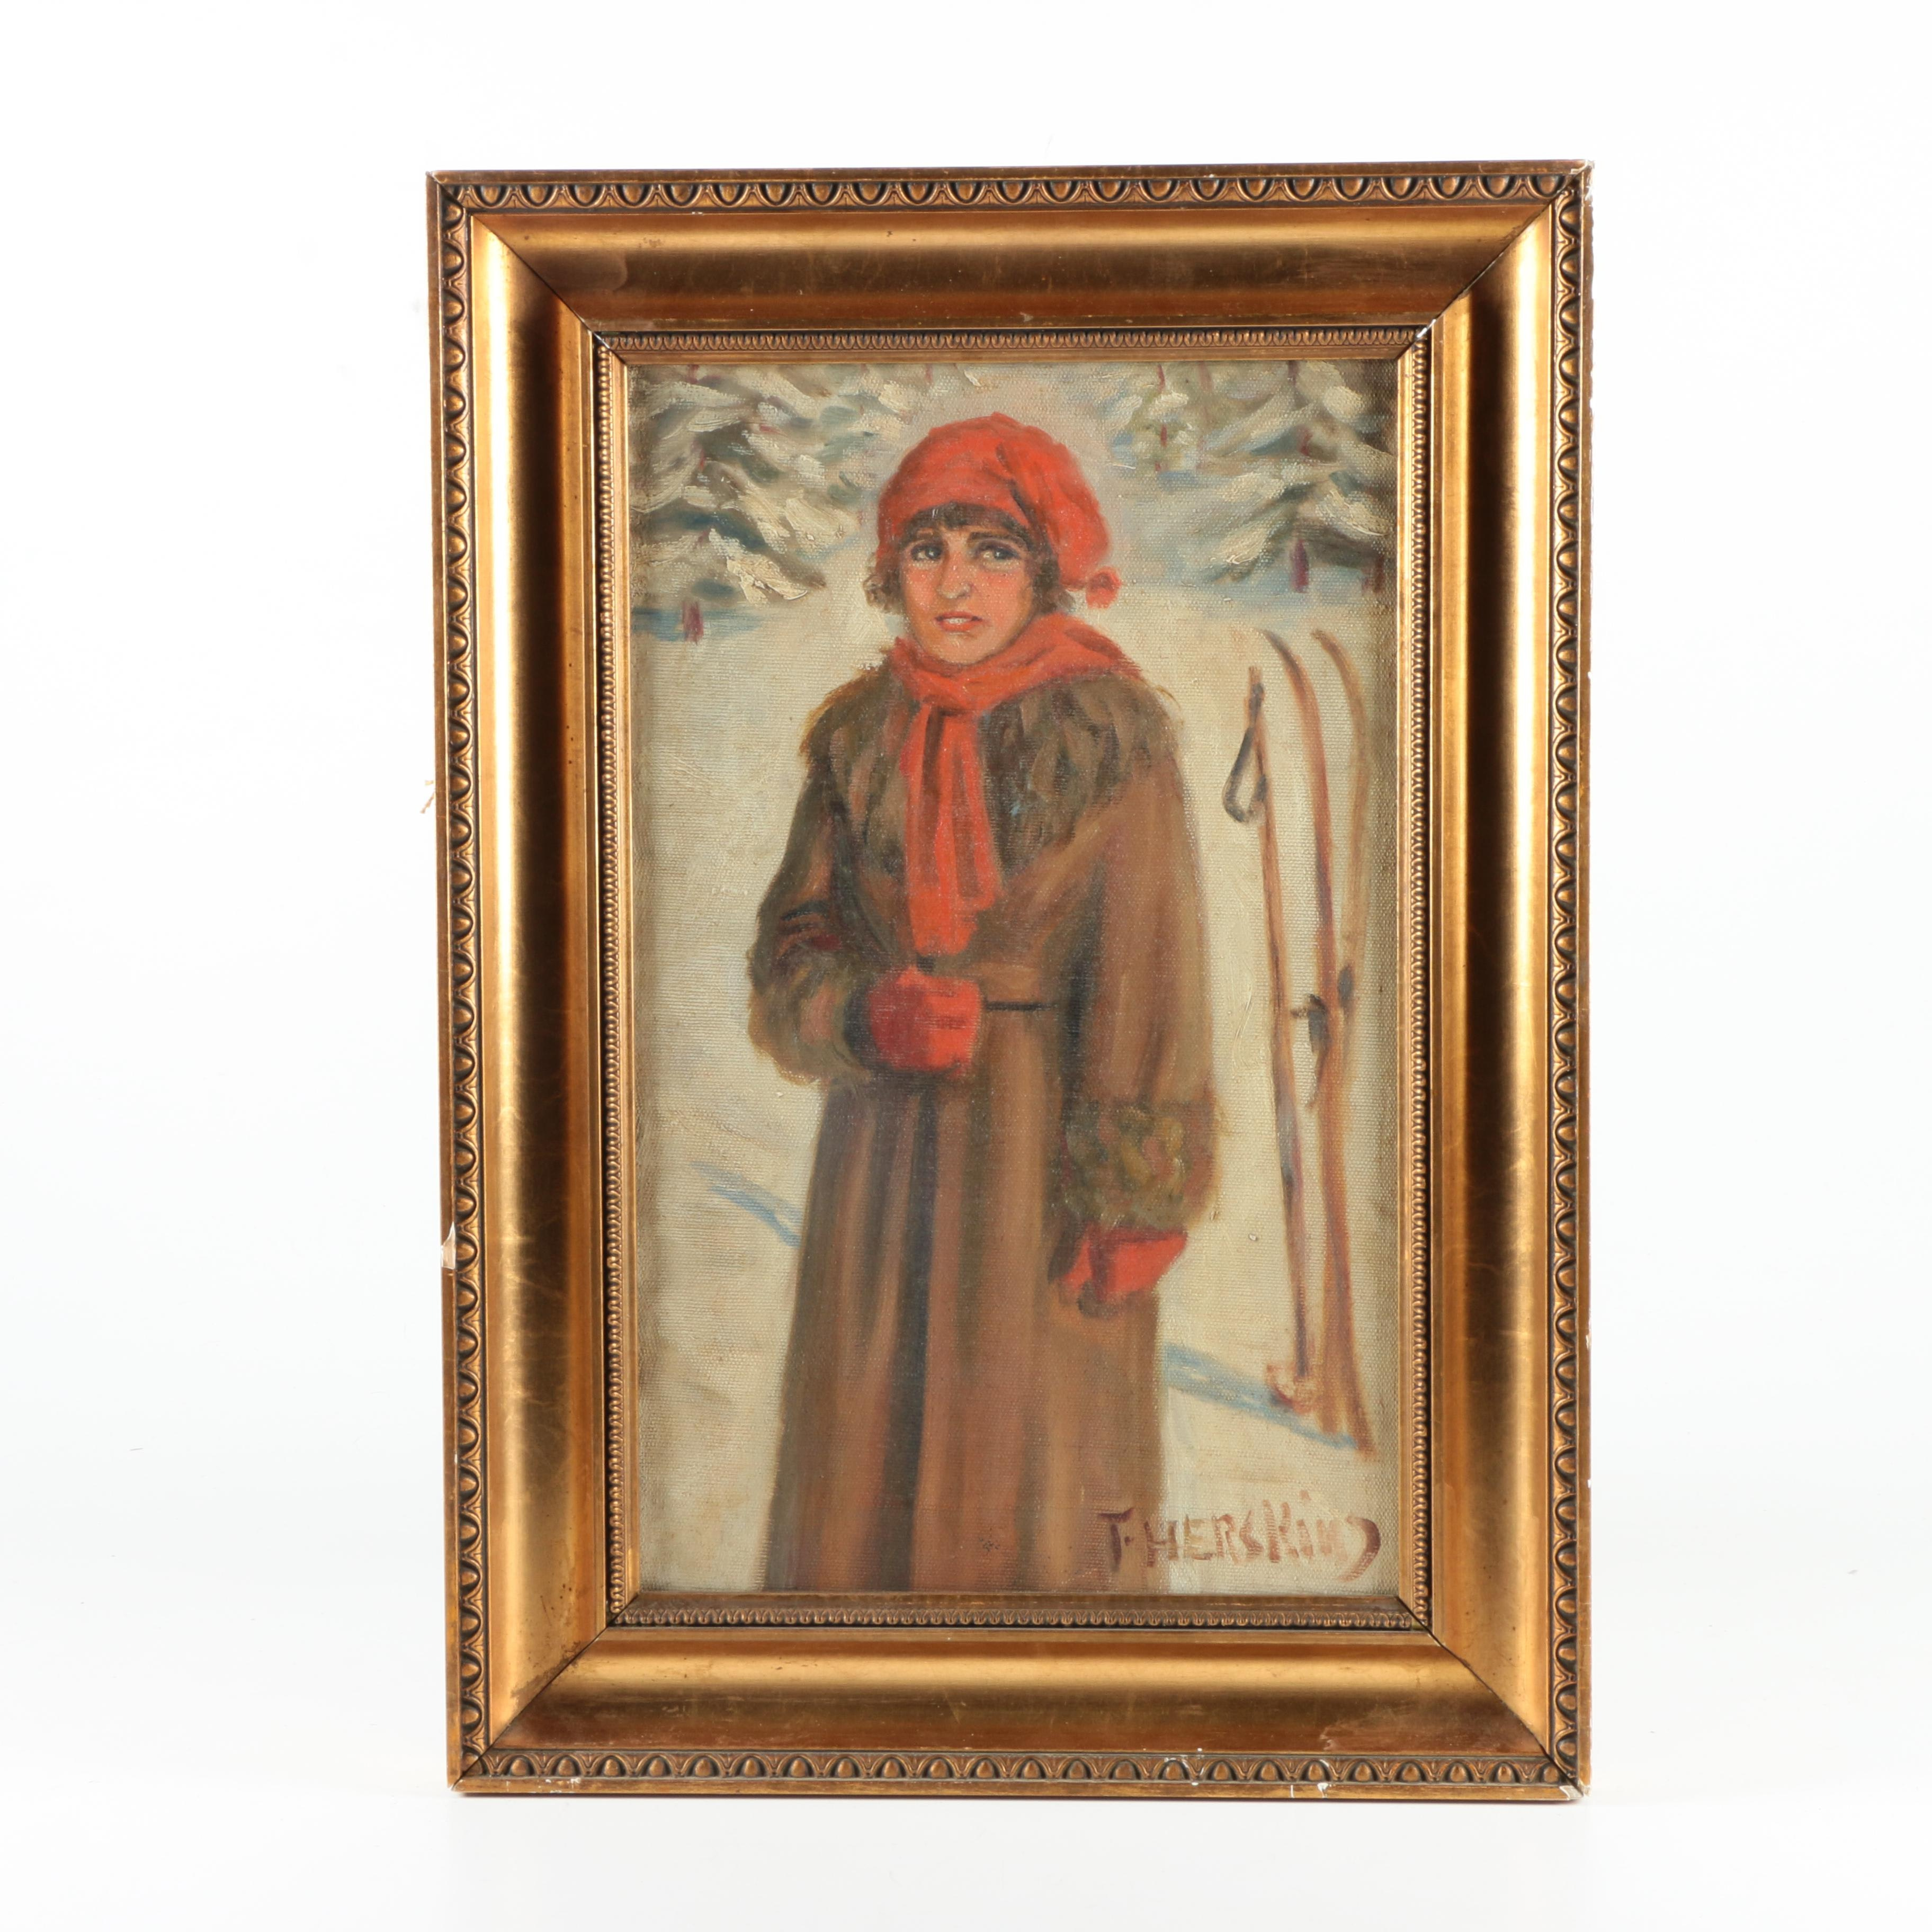 T. Herskind Oil Painting on Canvas of Woman in a Winter Landscape